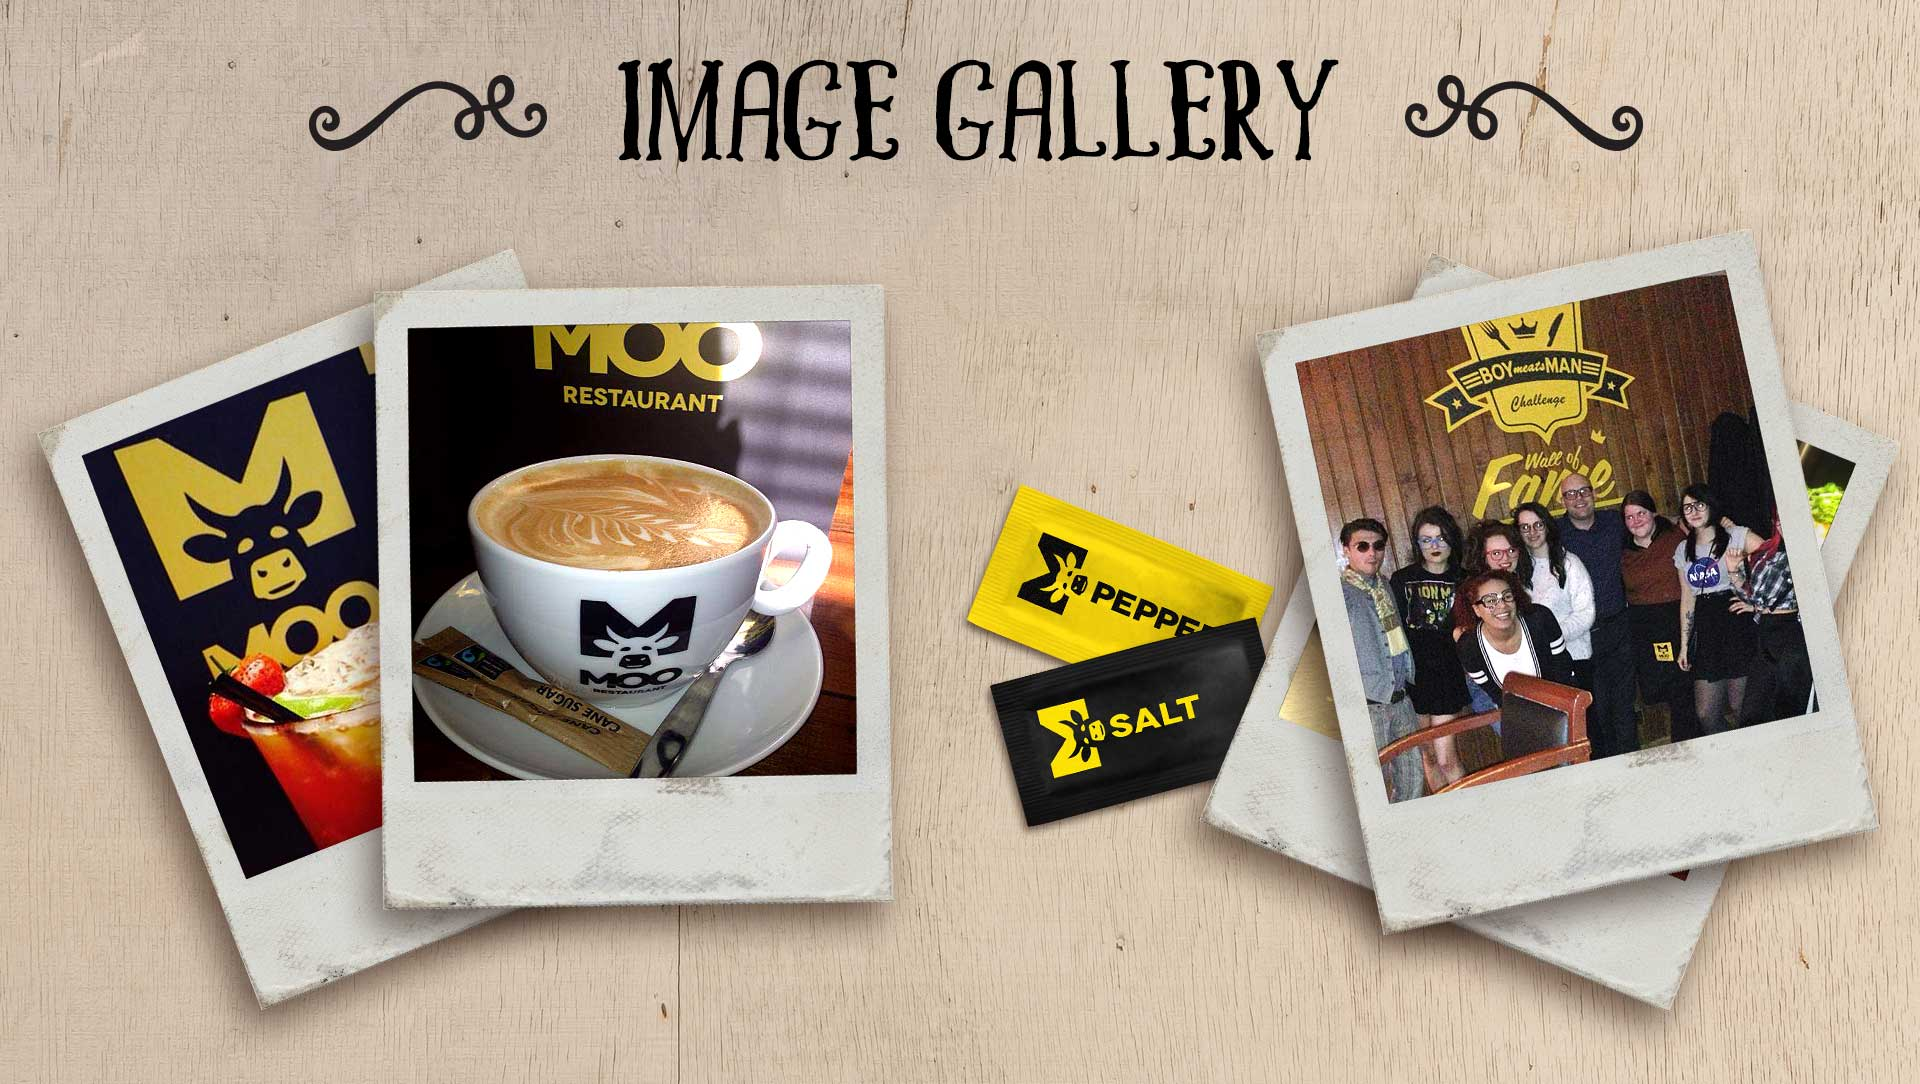 Moo restaurant logo design and menu design